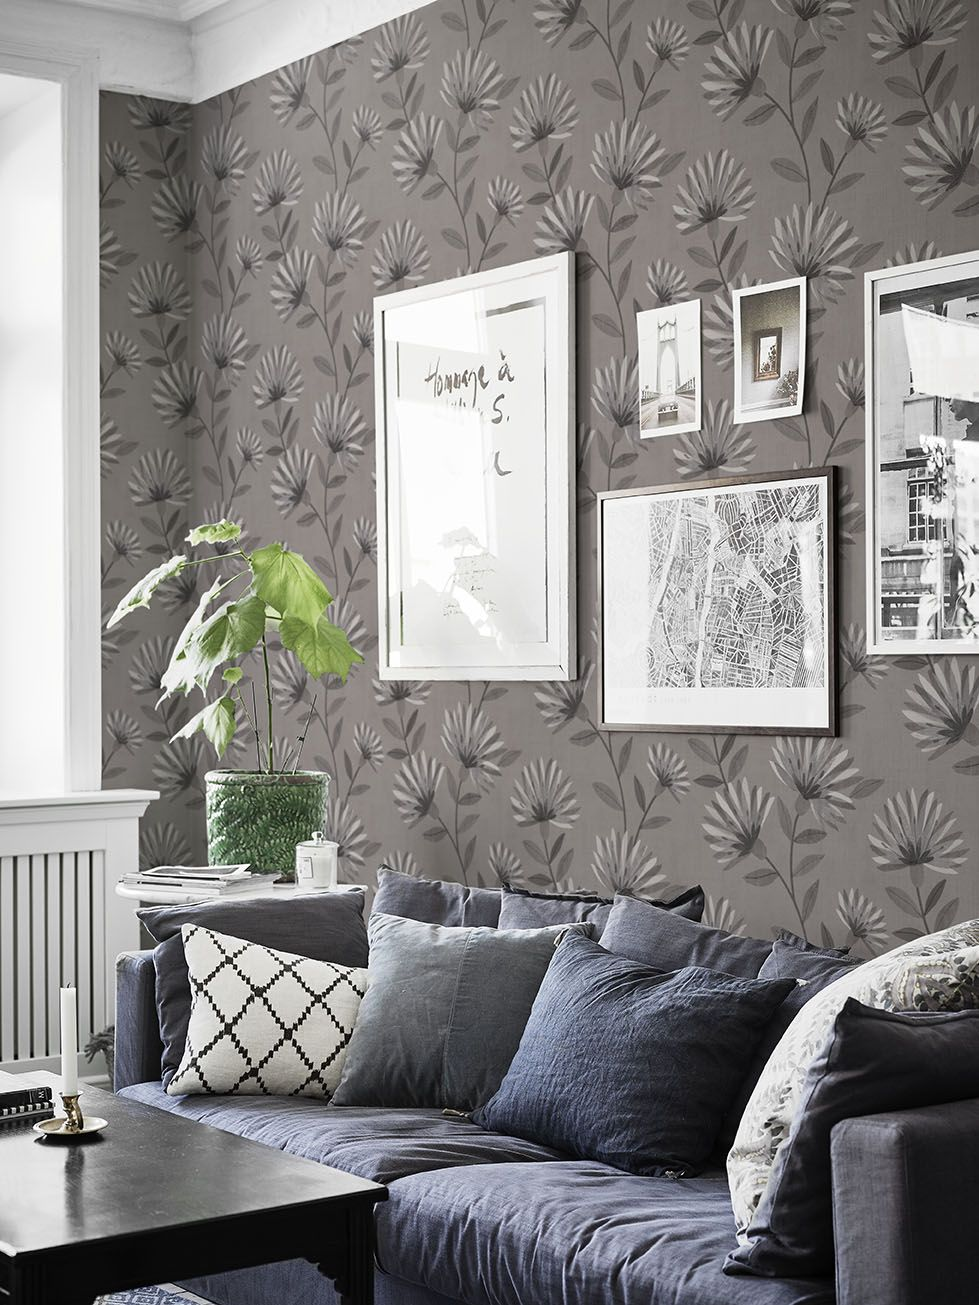 Chic Contemporary Modern Wallpaper Our Bessie Wallpaper Chic And Unashamedly Contemporary It Blends